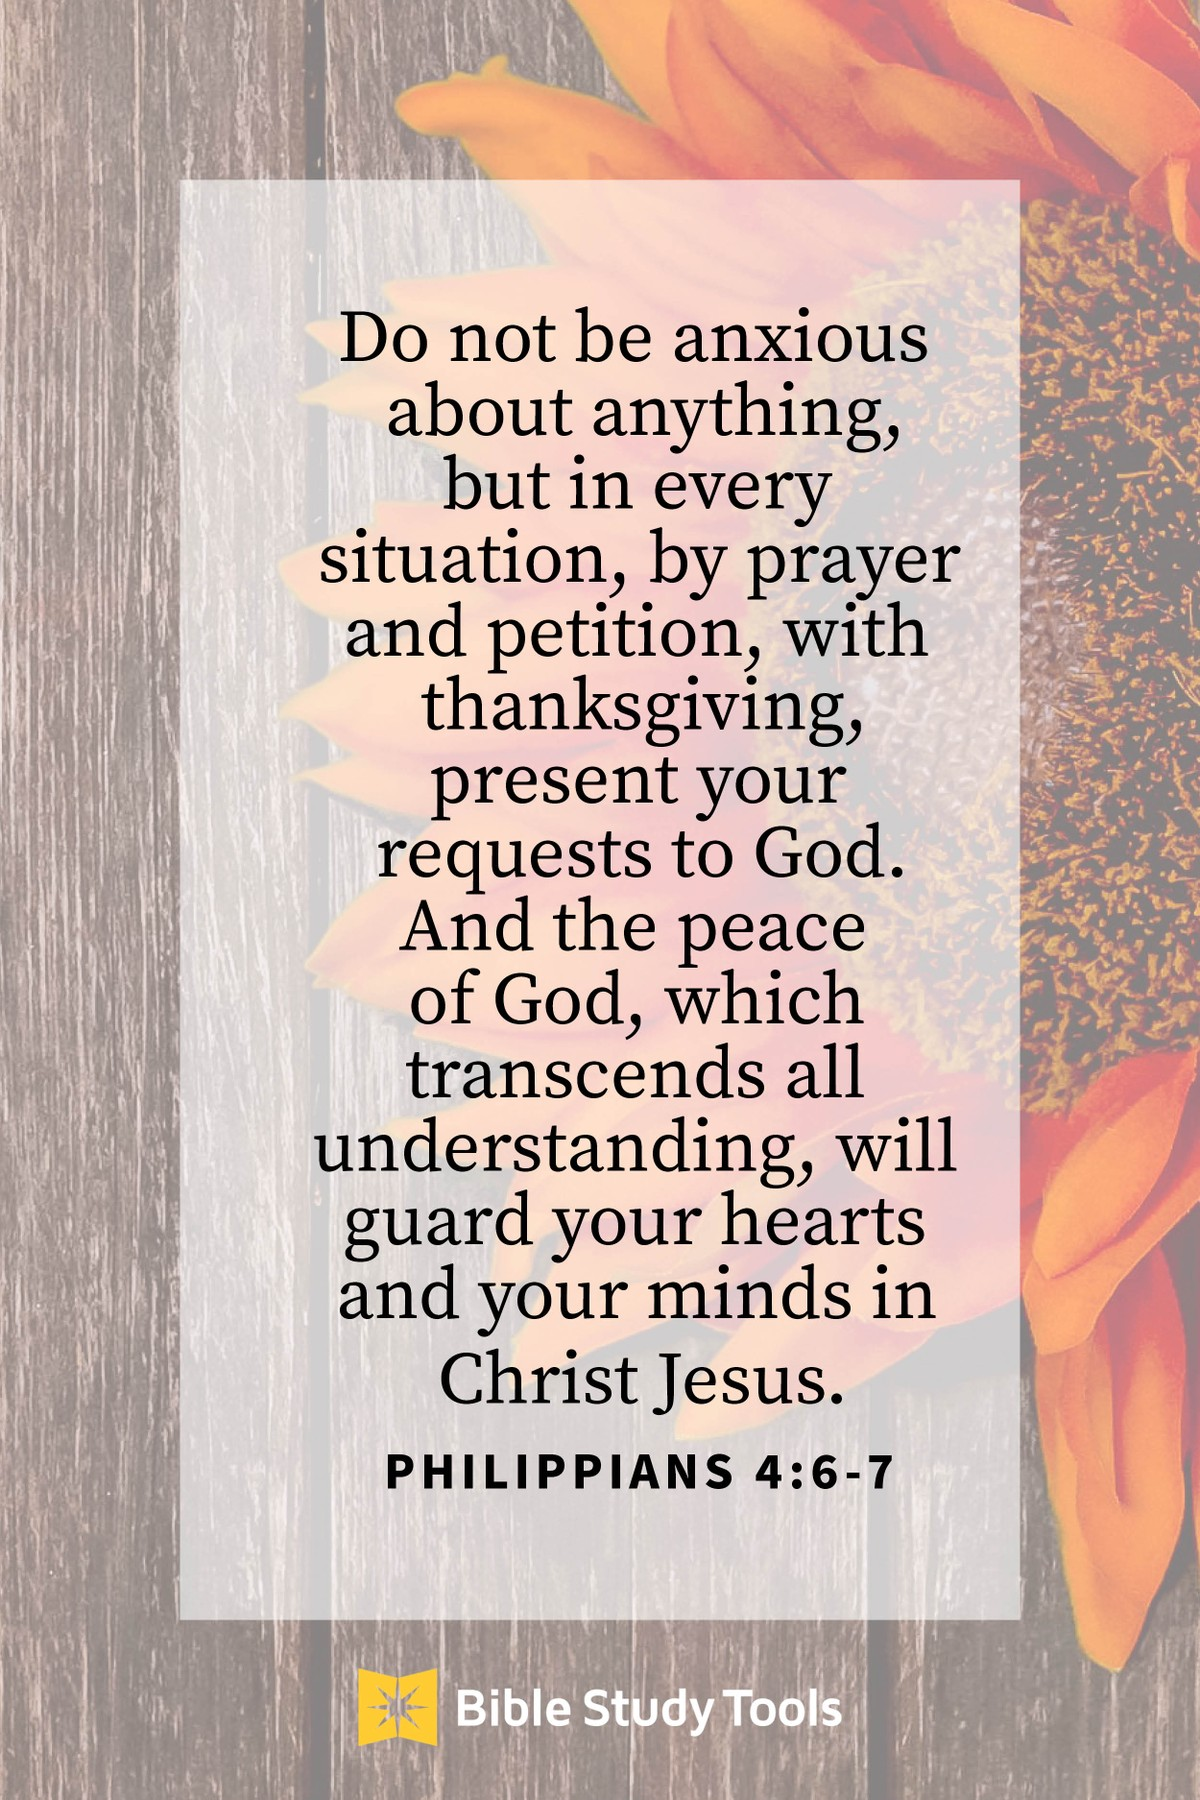 philippians 4:6-7 do not be anxious